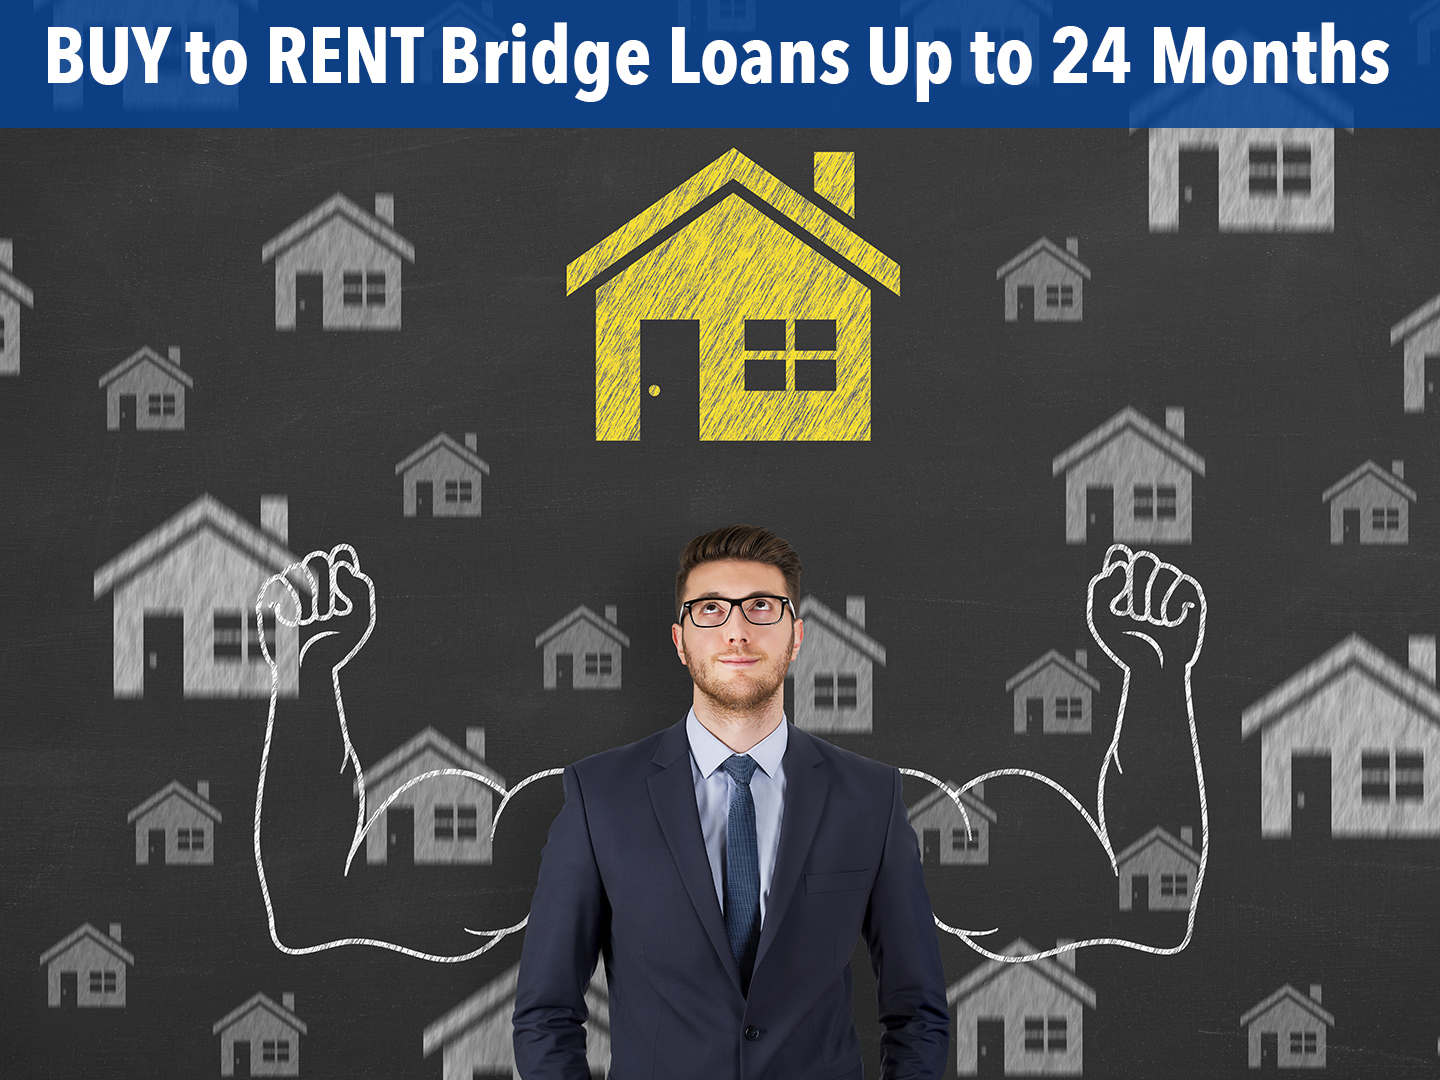 Buy to Rent Bridge Loans Up to 24 Months